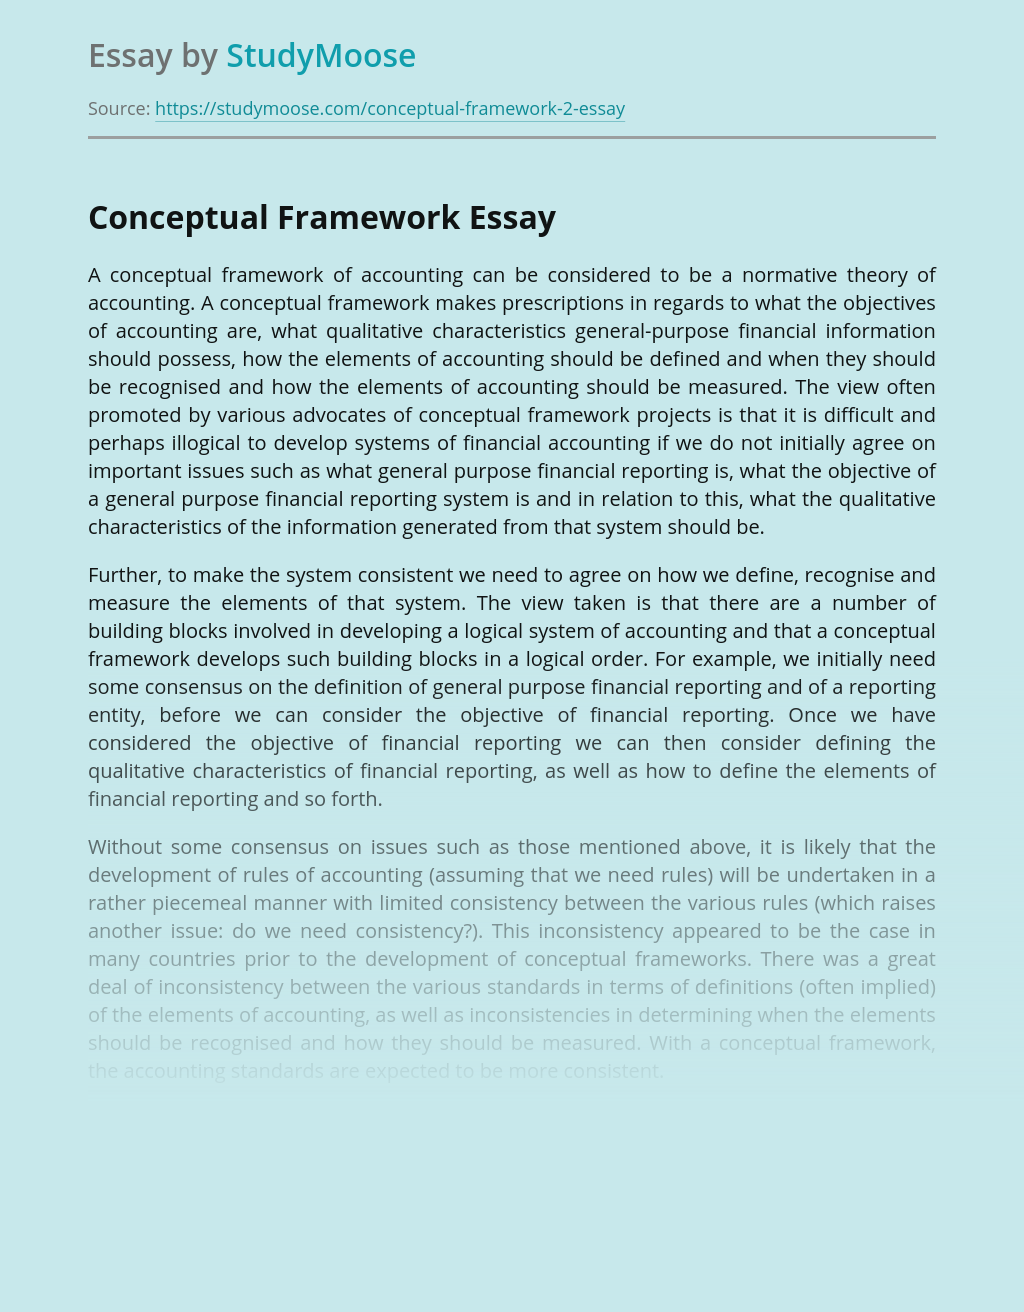 A Conceptual Framework of Accounting